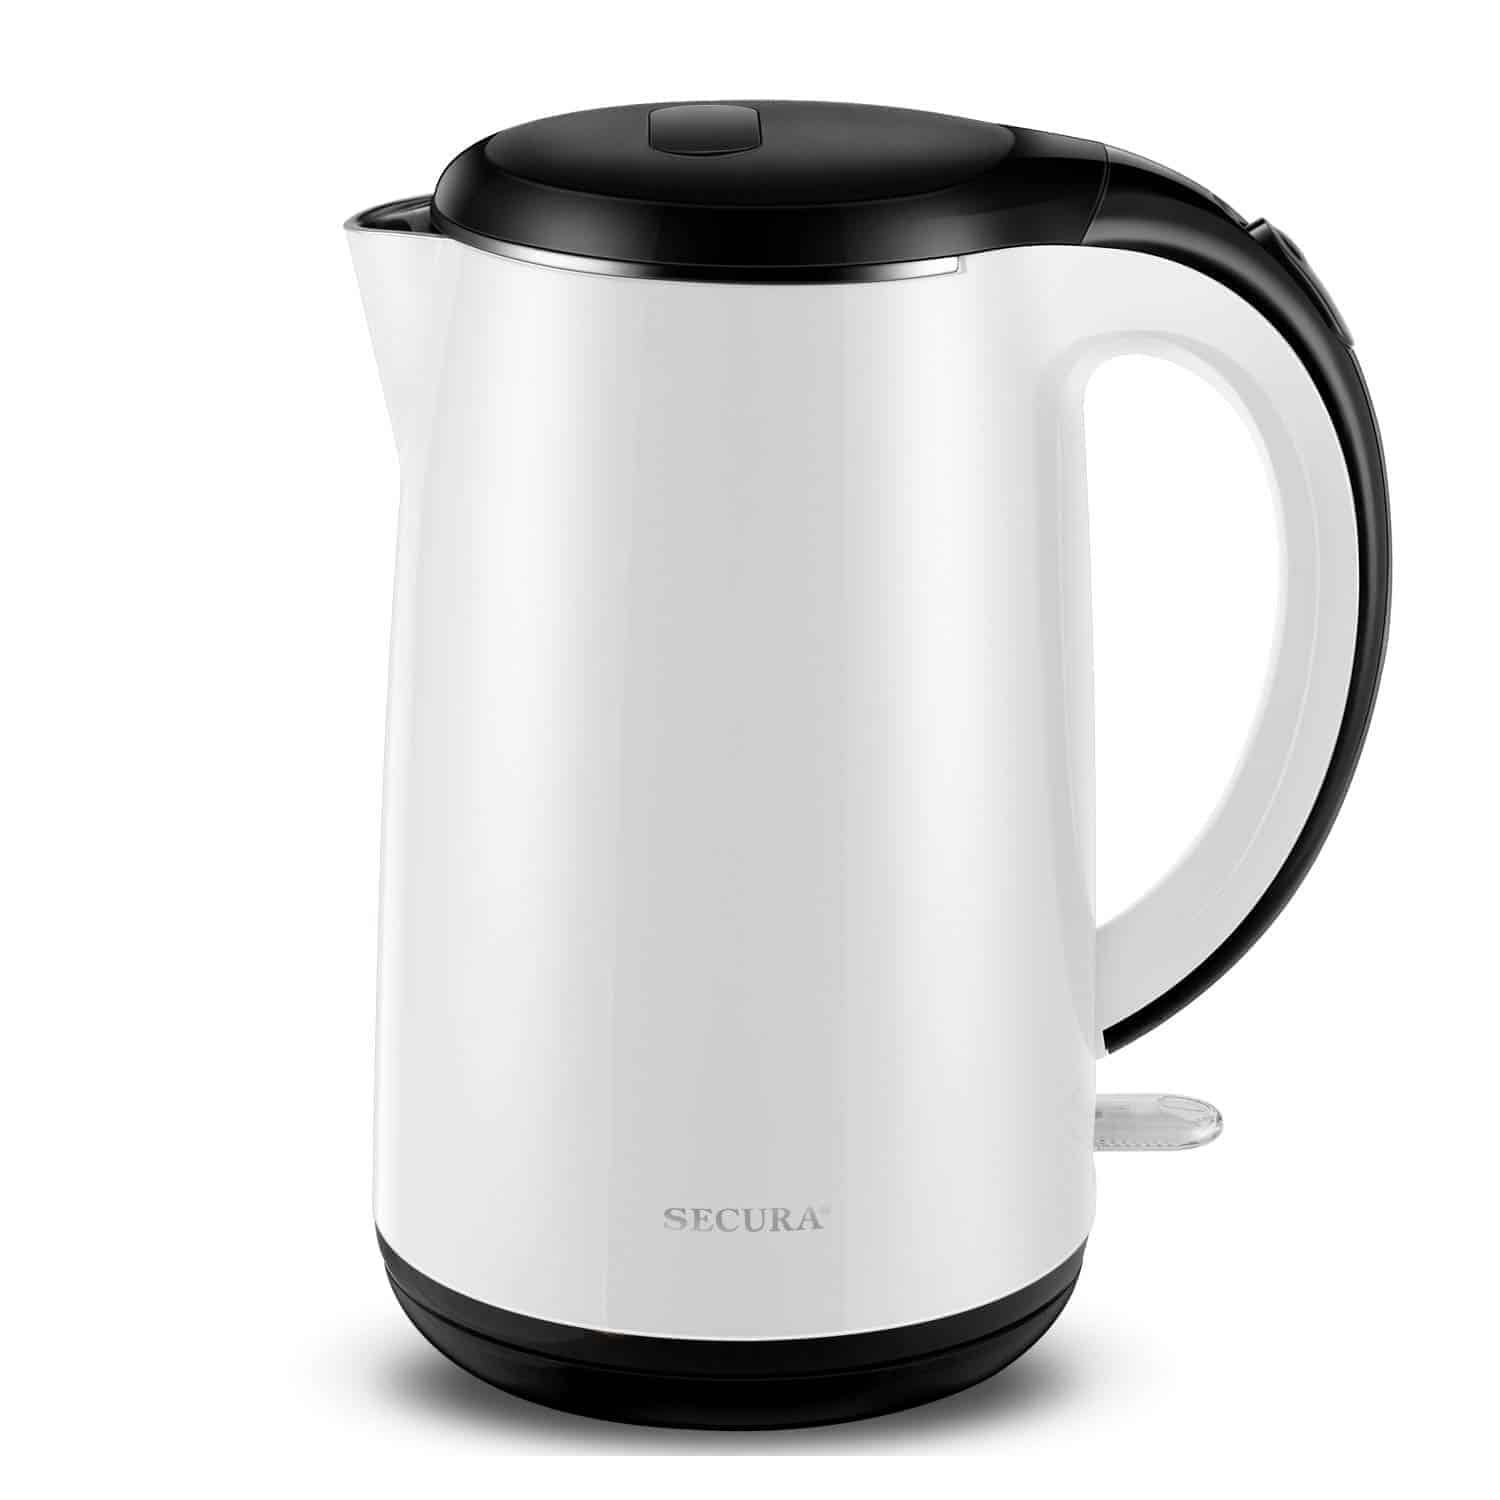 Secura Stainless Steel Double Wall Electric Kettle